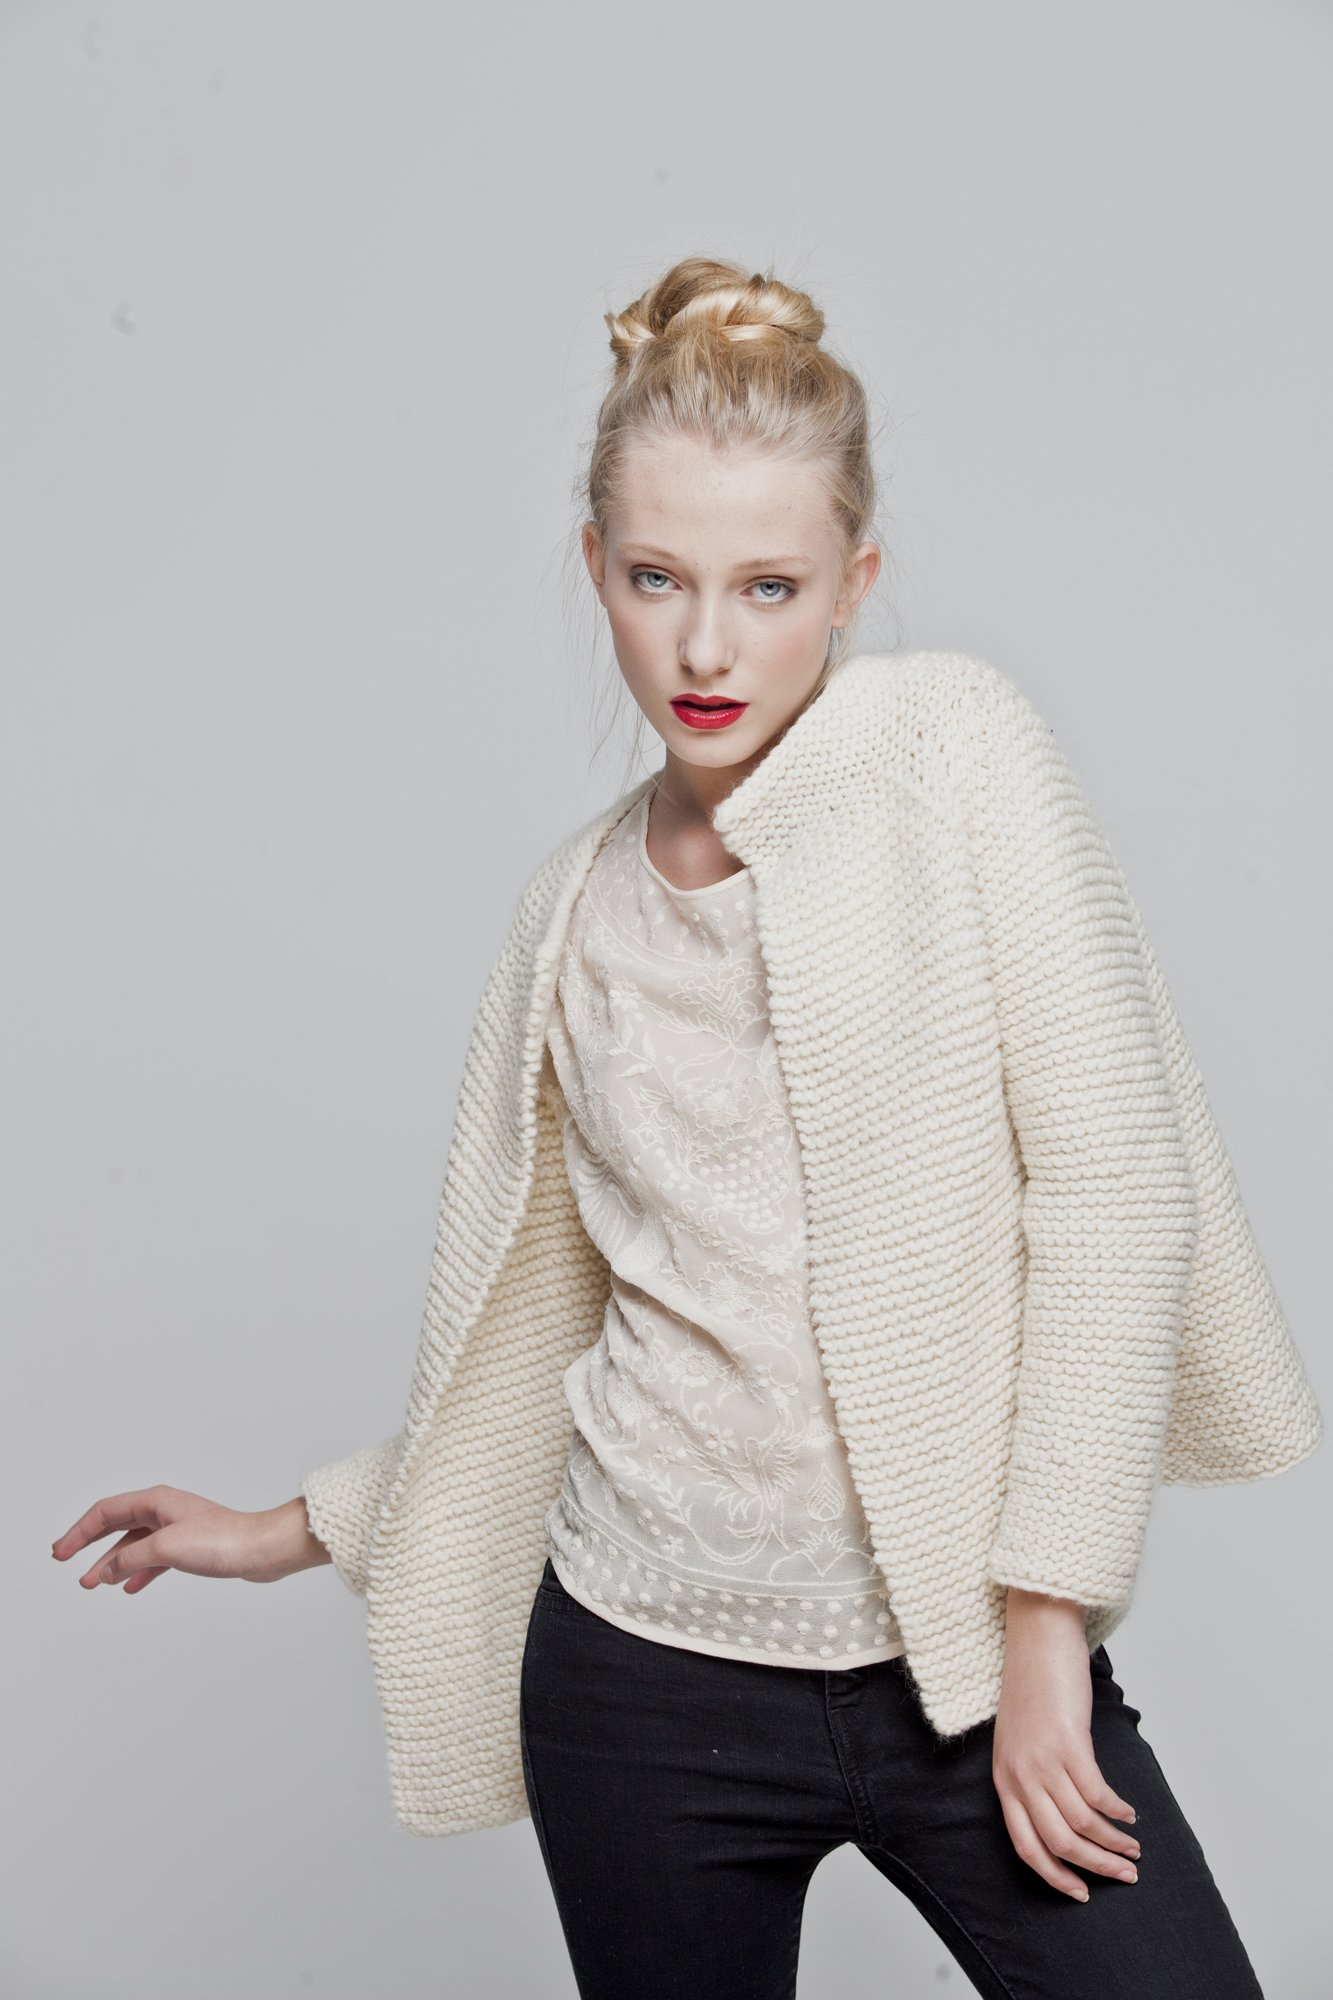 We are Knitters - Intermediate Level Knitting Kit - Martina Cardigan by We Are Knitters (Image #2)